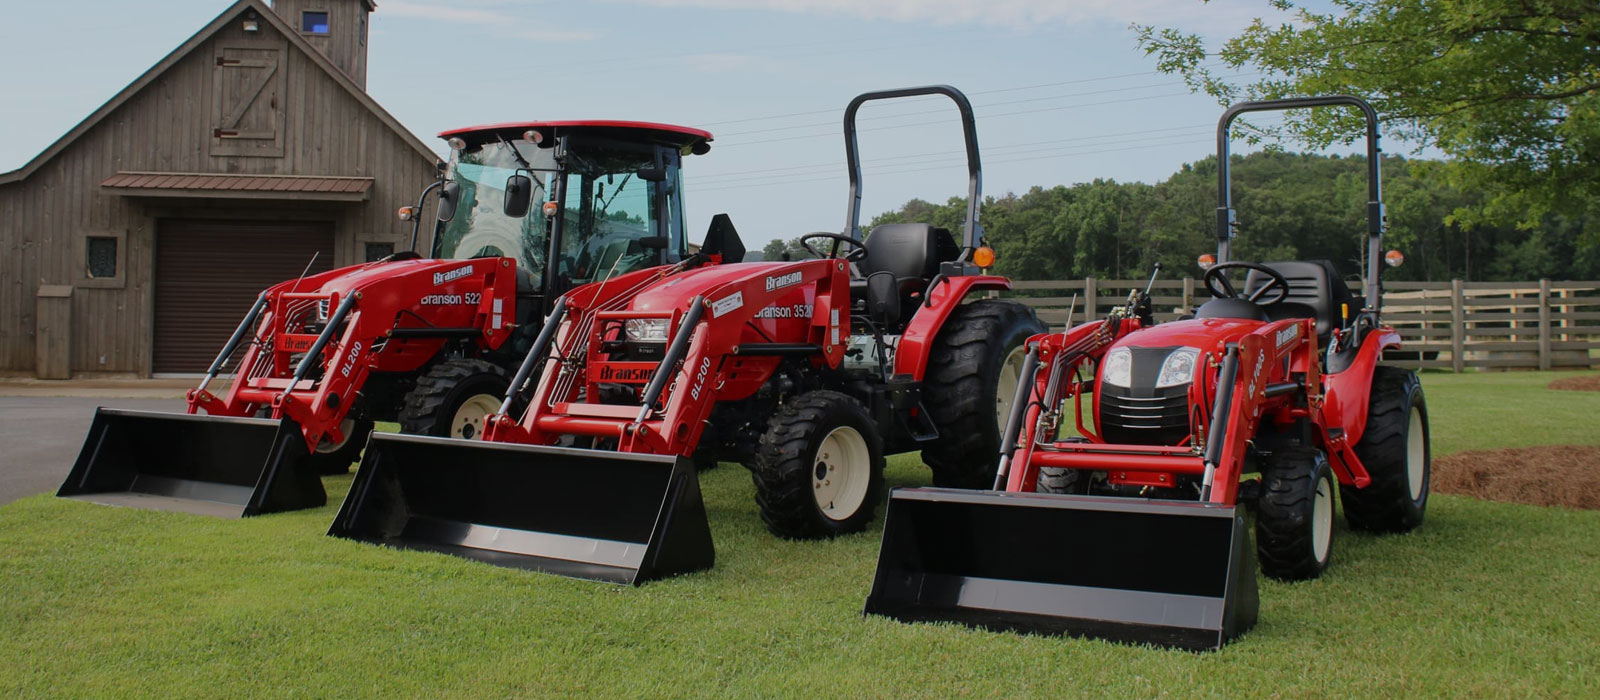 The Tractor Yard | Coweta, OK | Providing top of the line sales and